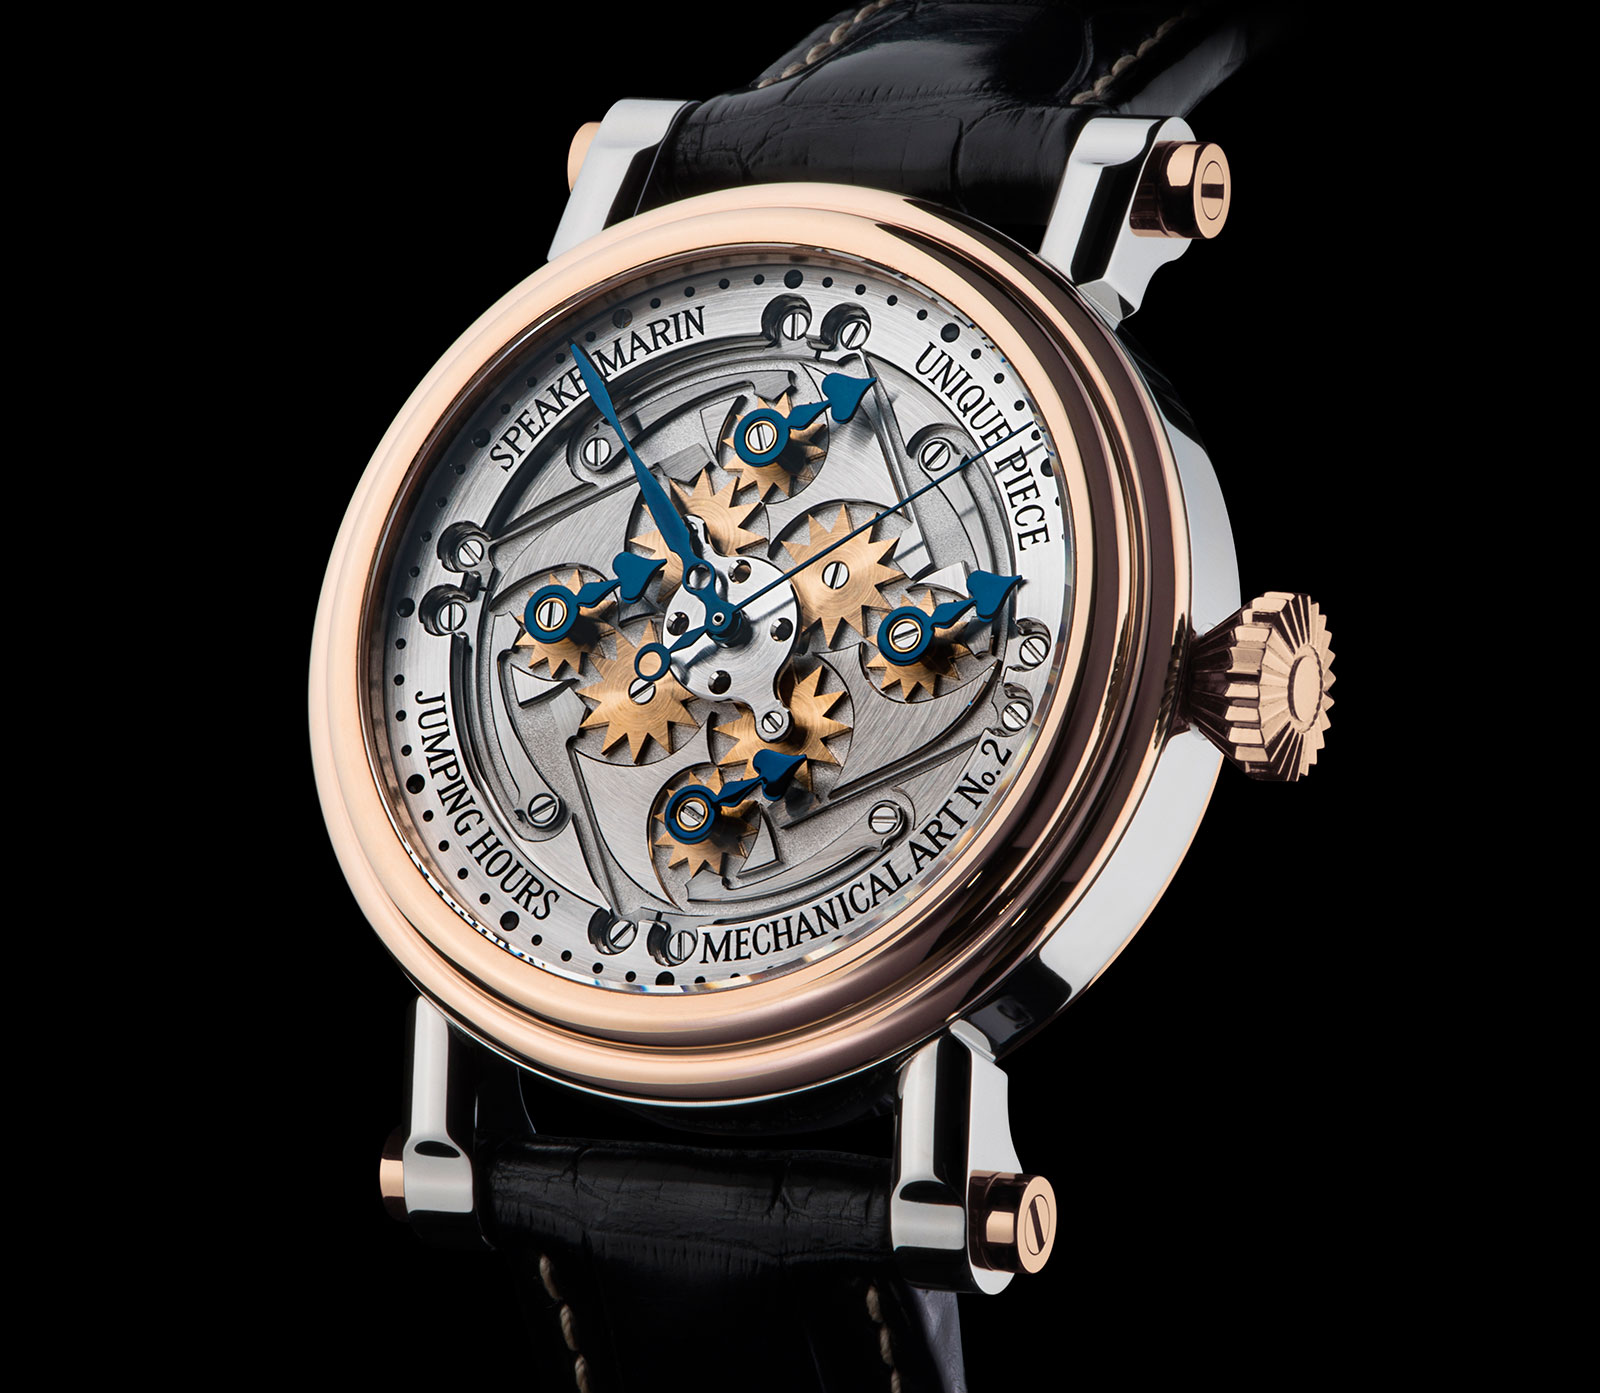 Speake-Marin-Jumping-Hours-4